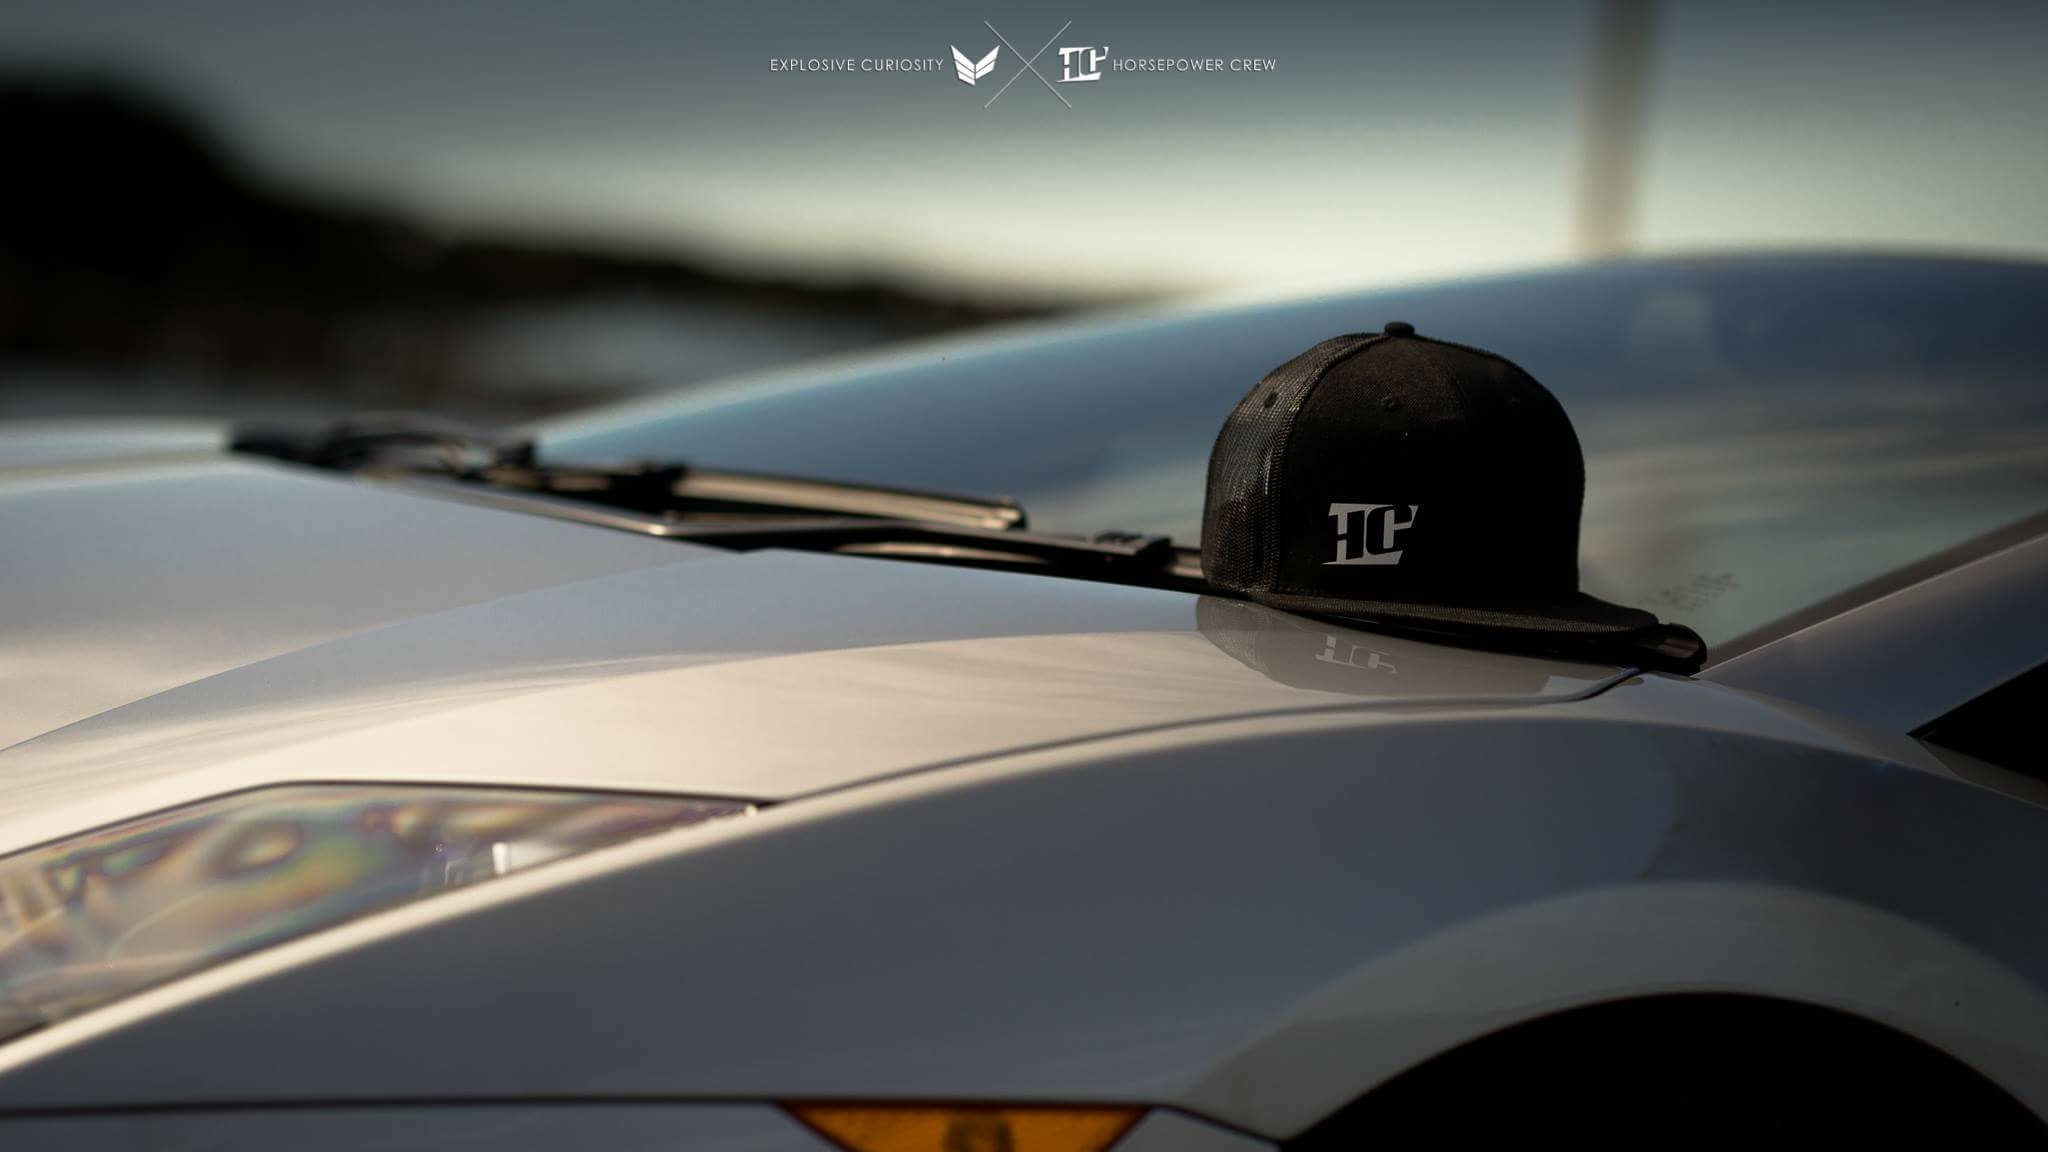 Hat-black-with-white-HC-on-lambo